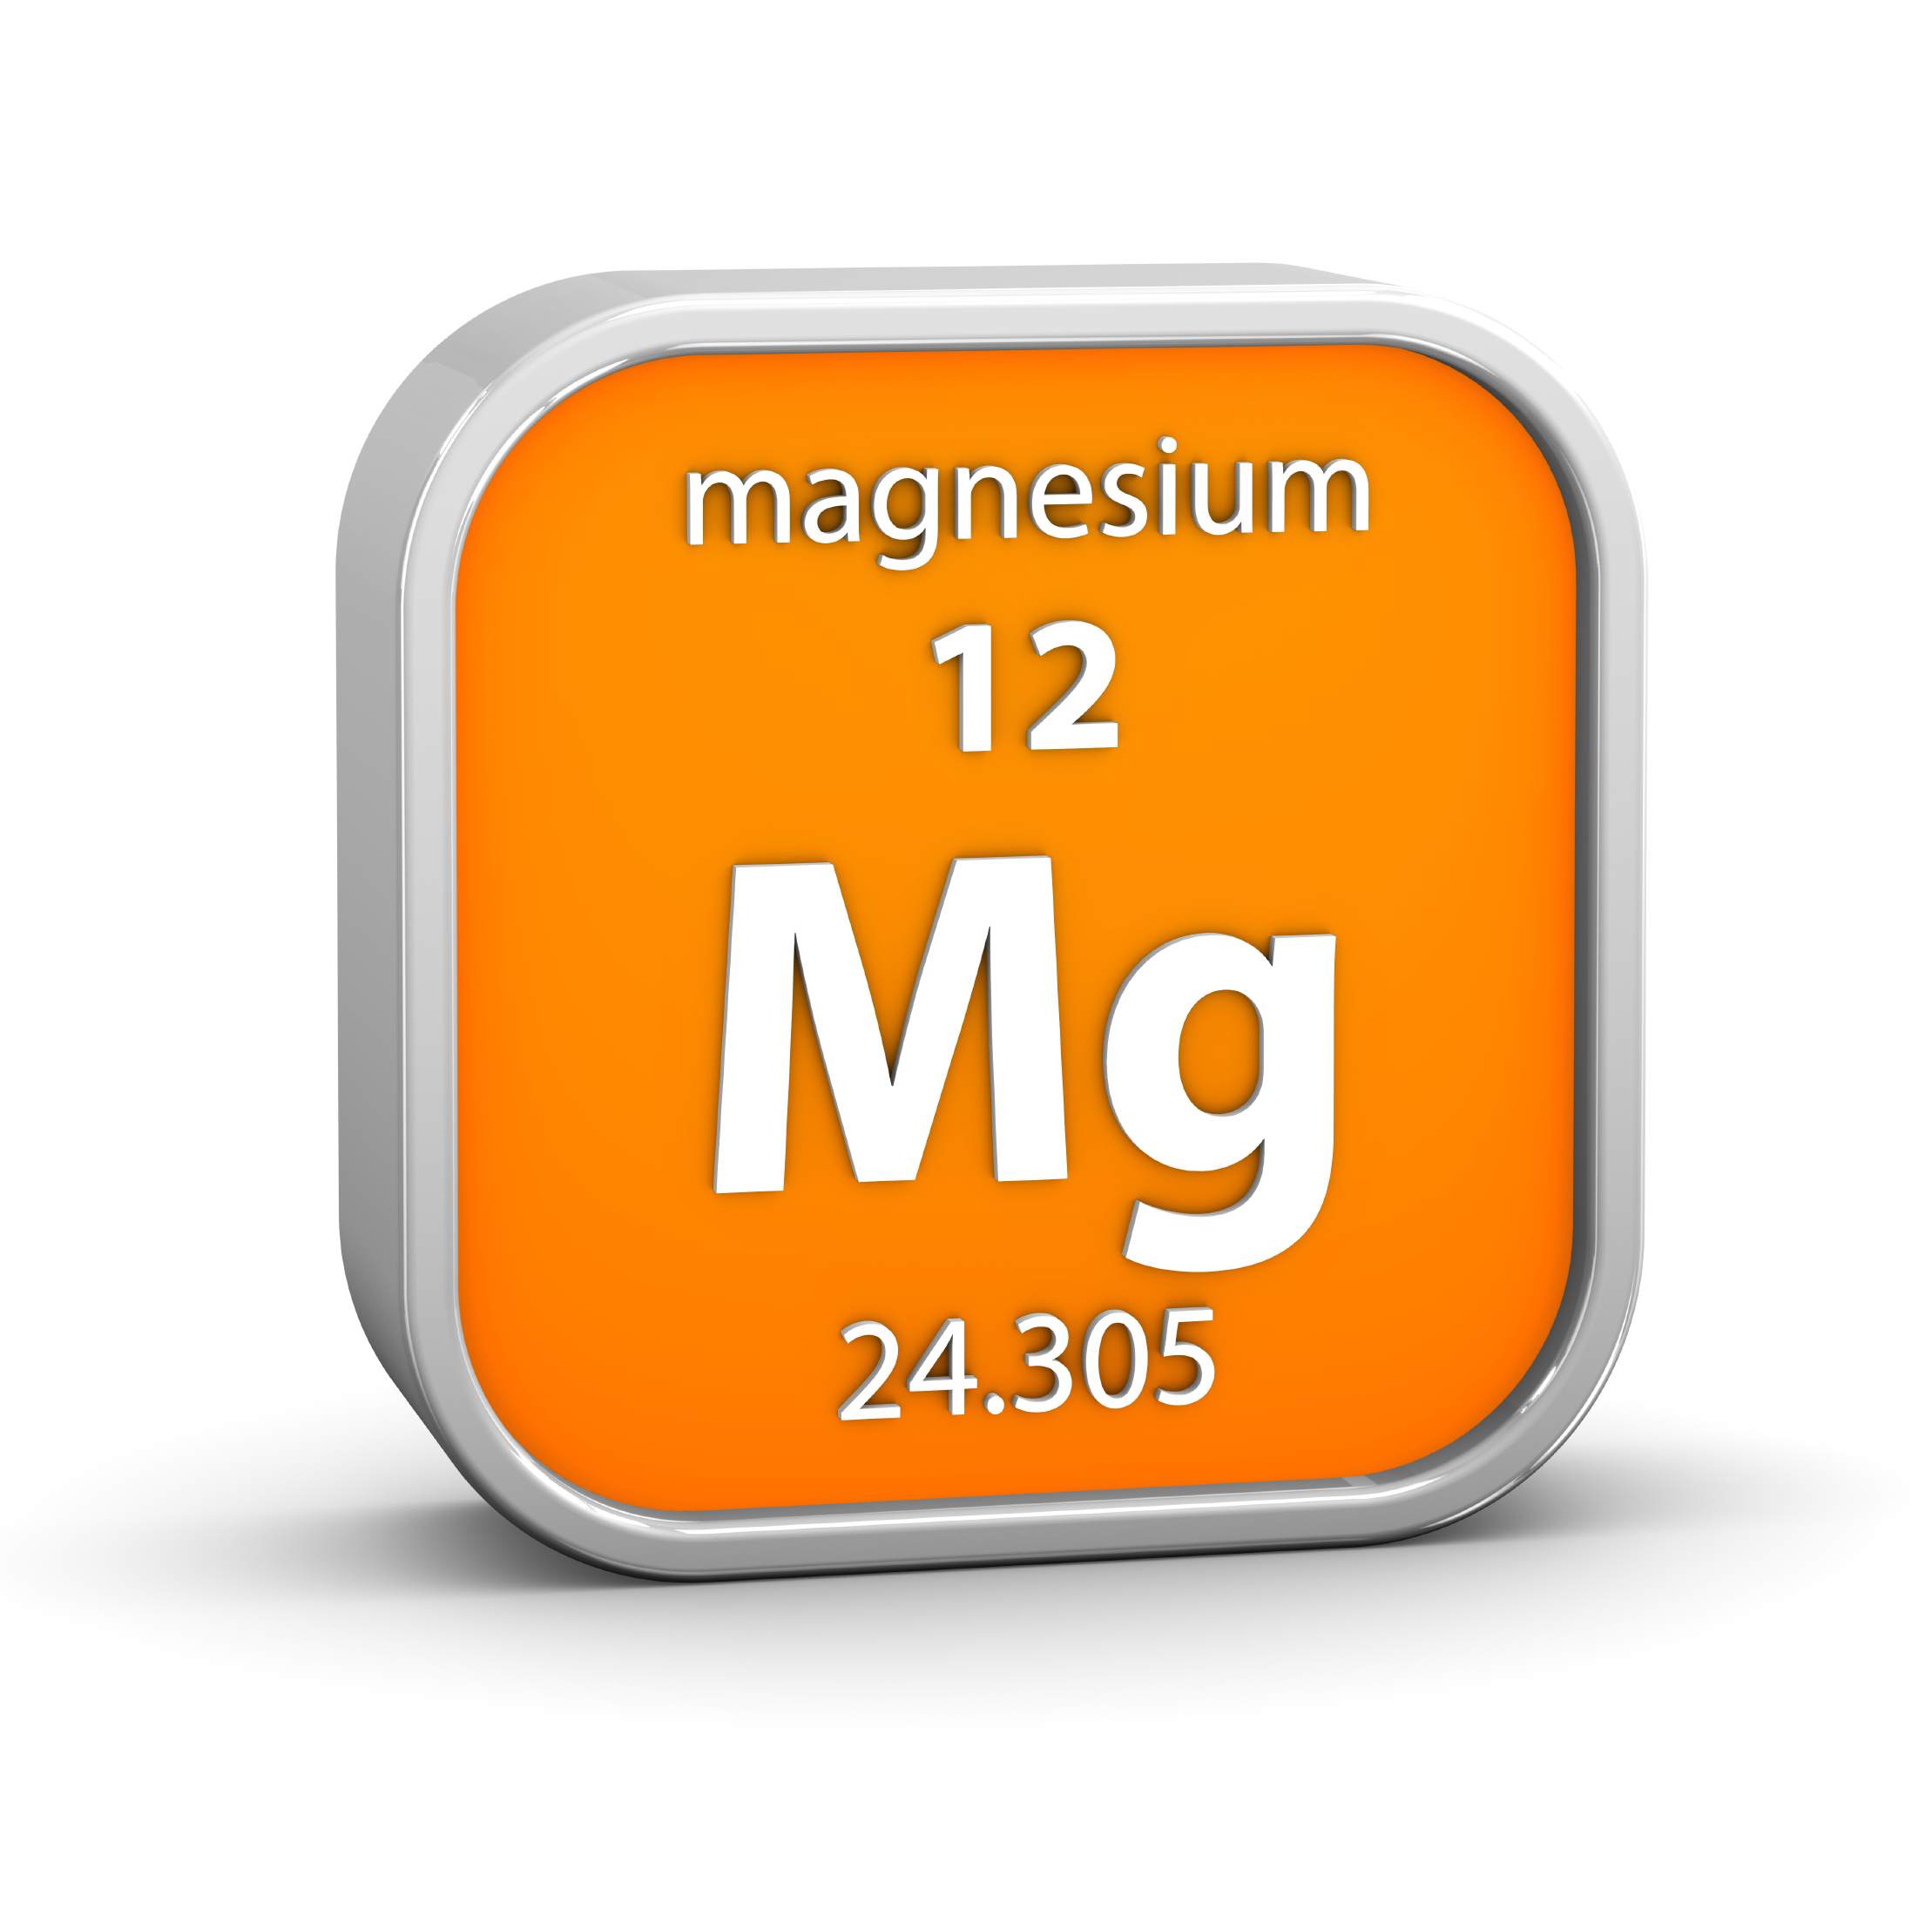 Optimized Magnesium - A More Complete Magnesium Supplement